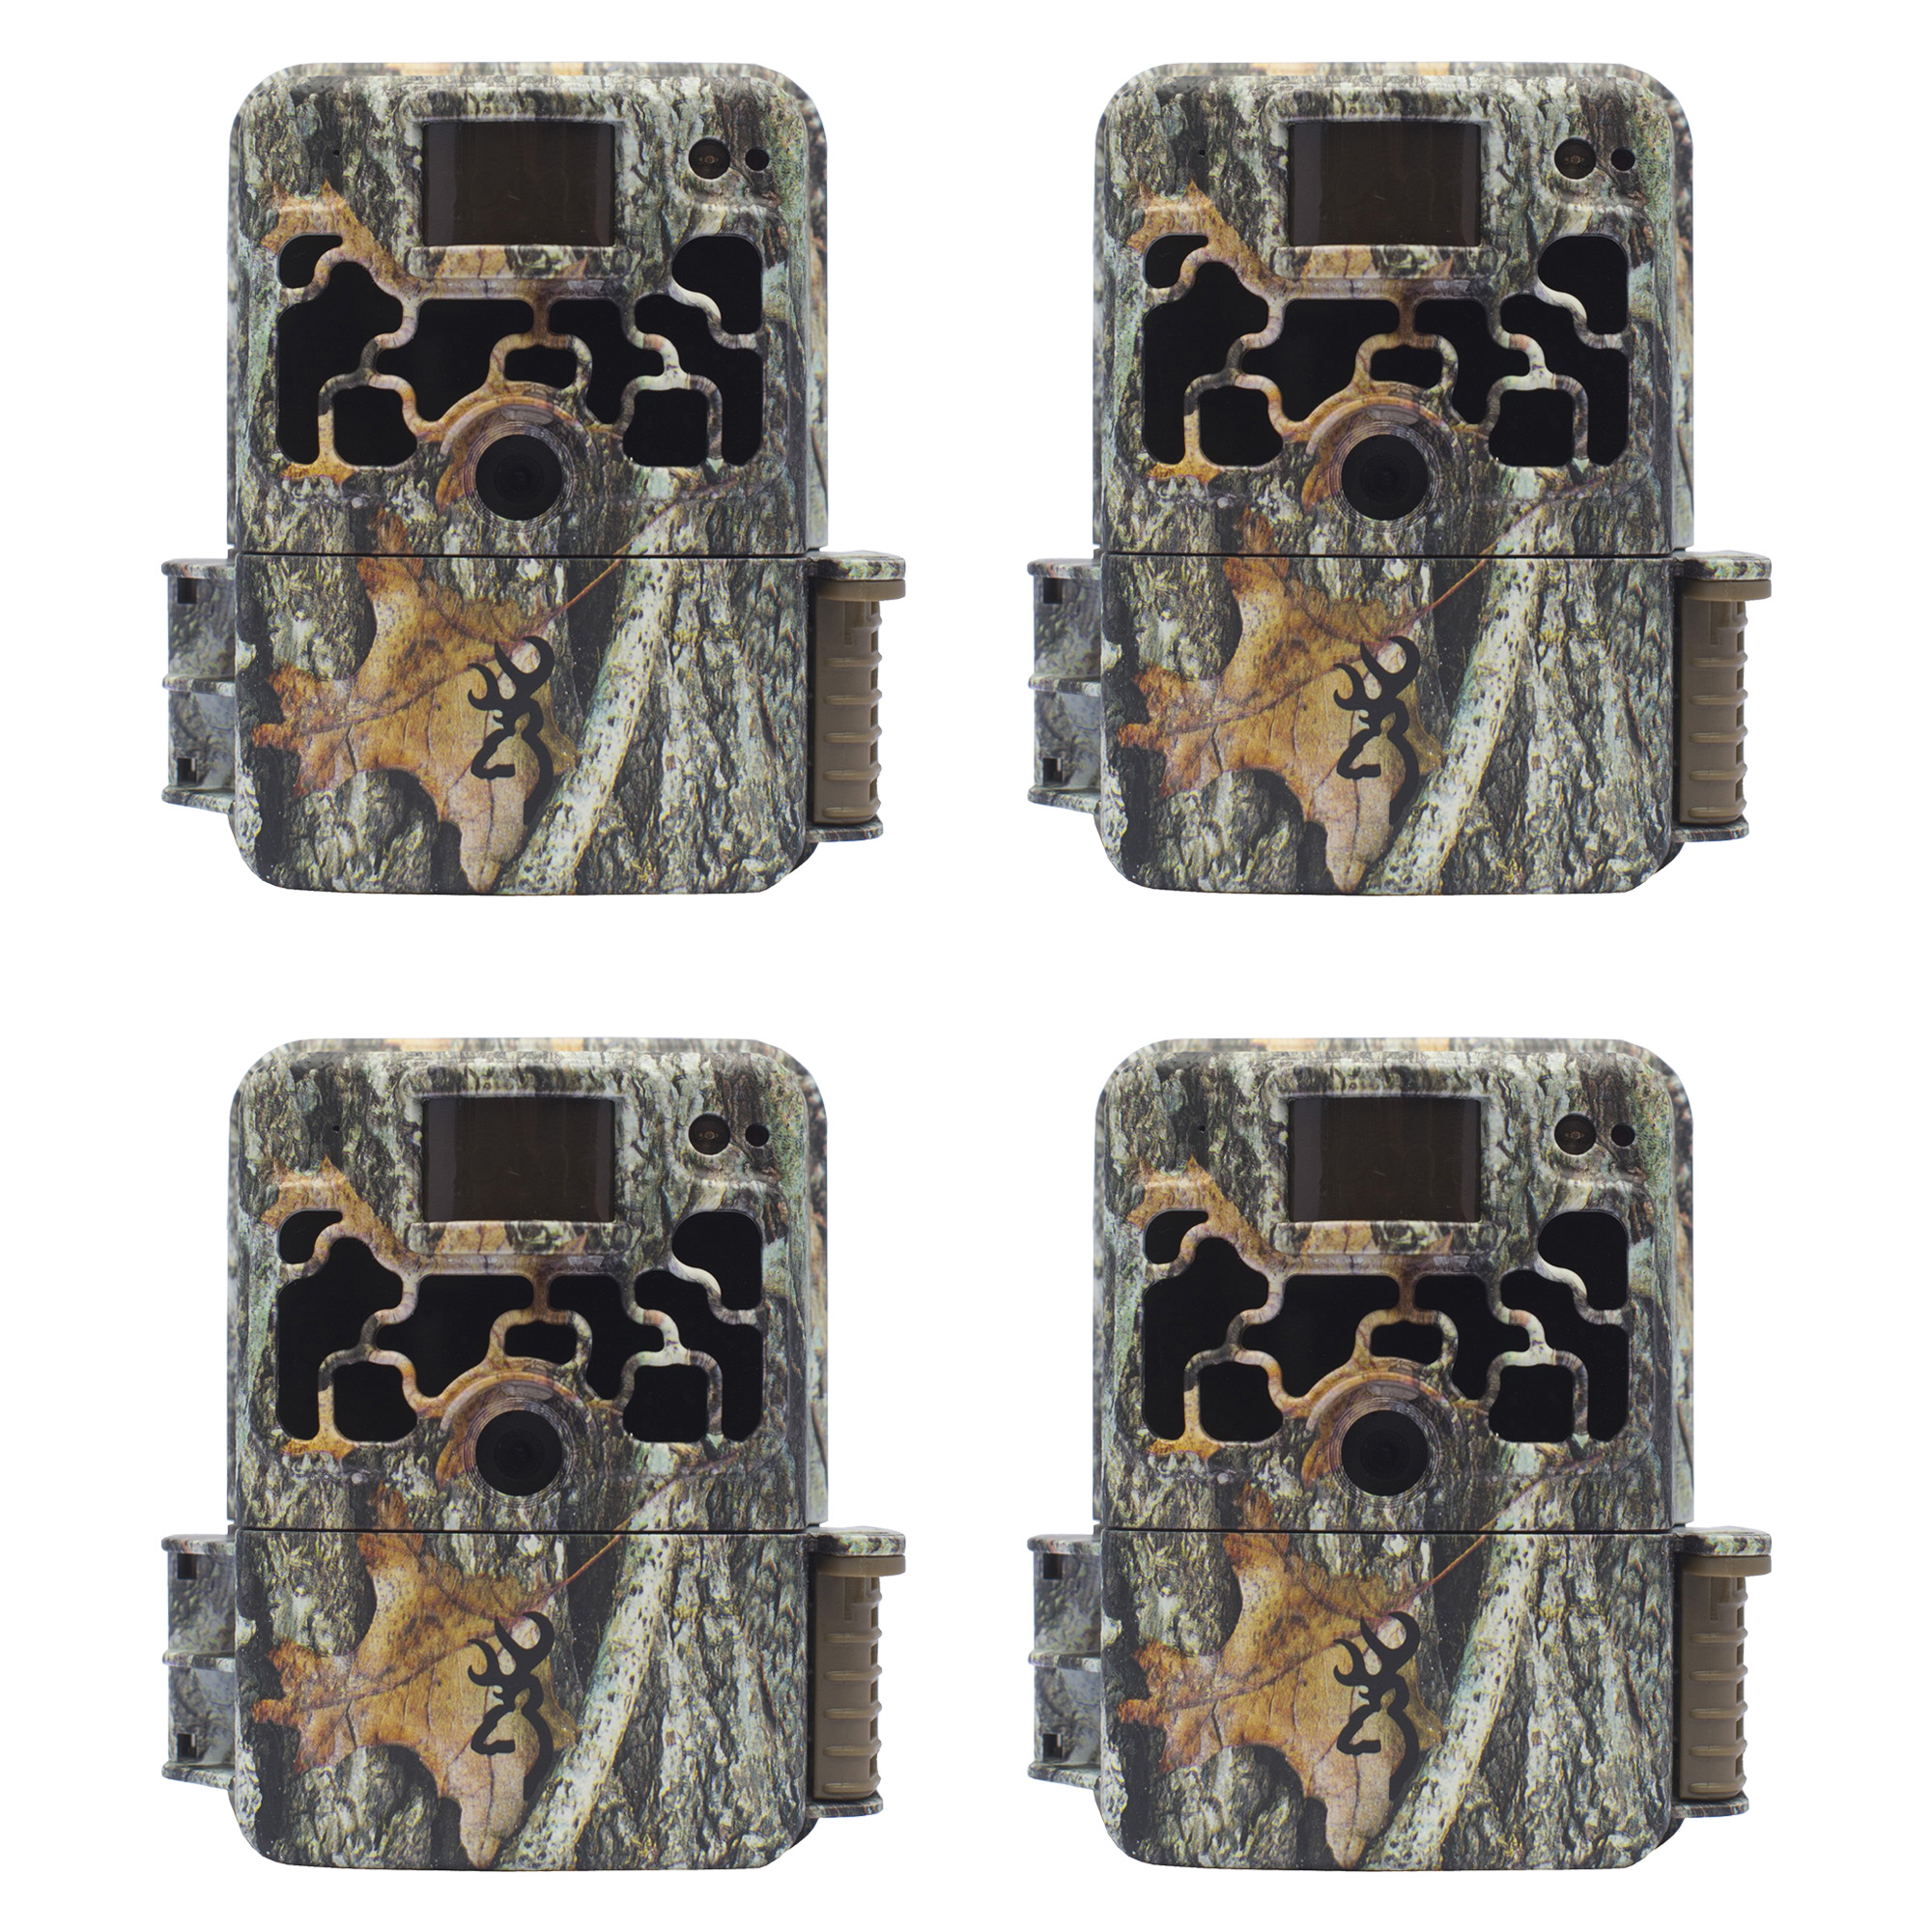 Click here to buy Browning Trail Cameras Dark Ops 940 16MP HD IR Game Camera, 4 Pack | BTC-6HD-940 by Browning Trail Cameras.